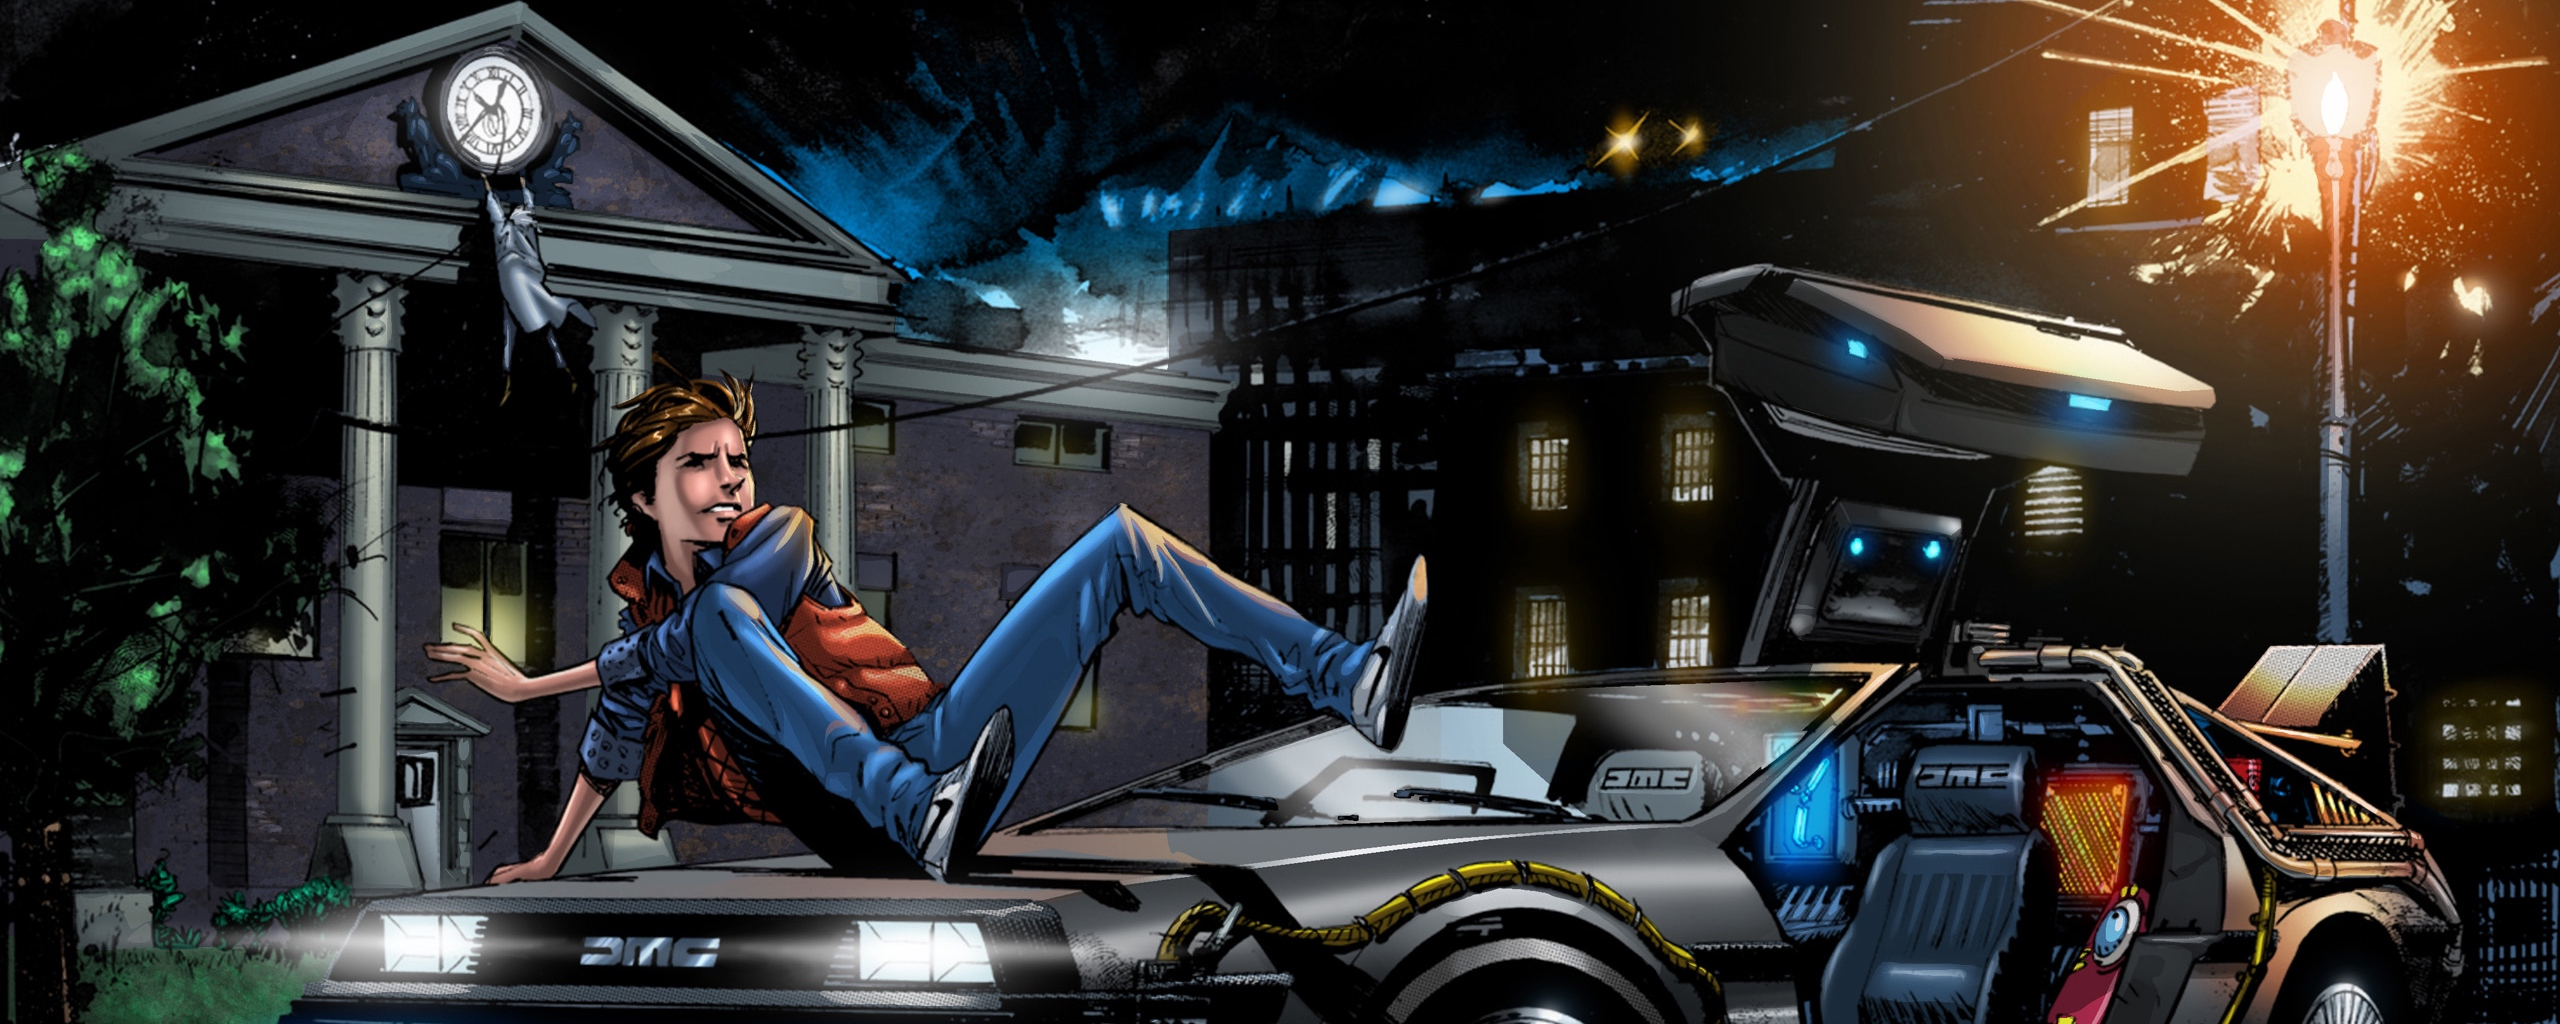 Download wallpaper 2560x1024 back to the future marty mcfly art 2560x1024